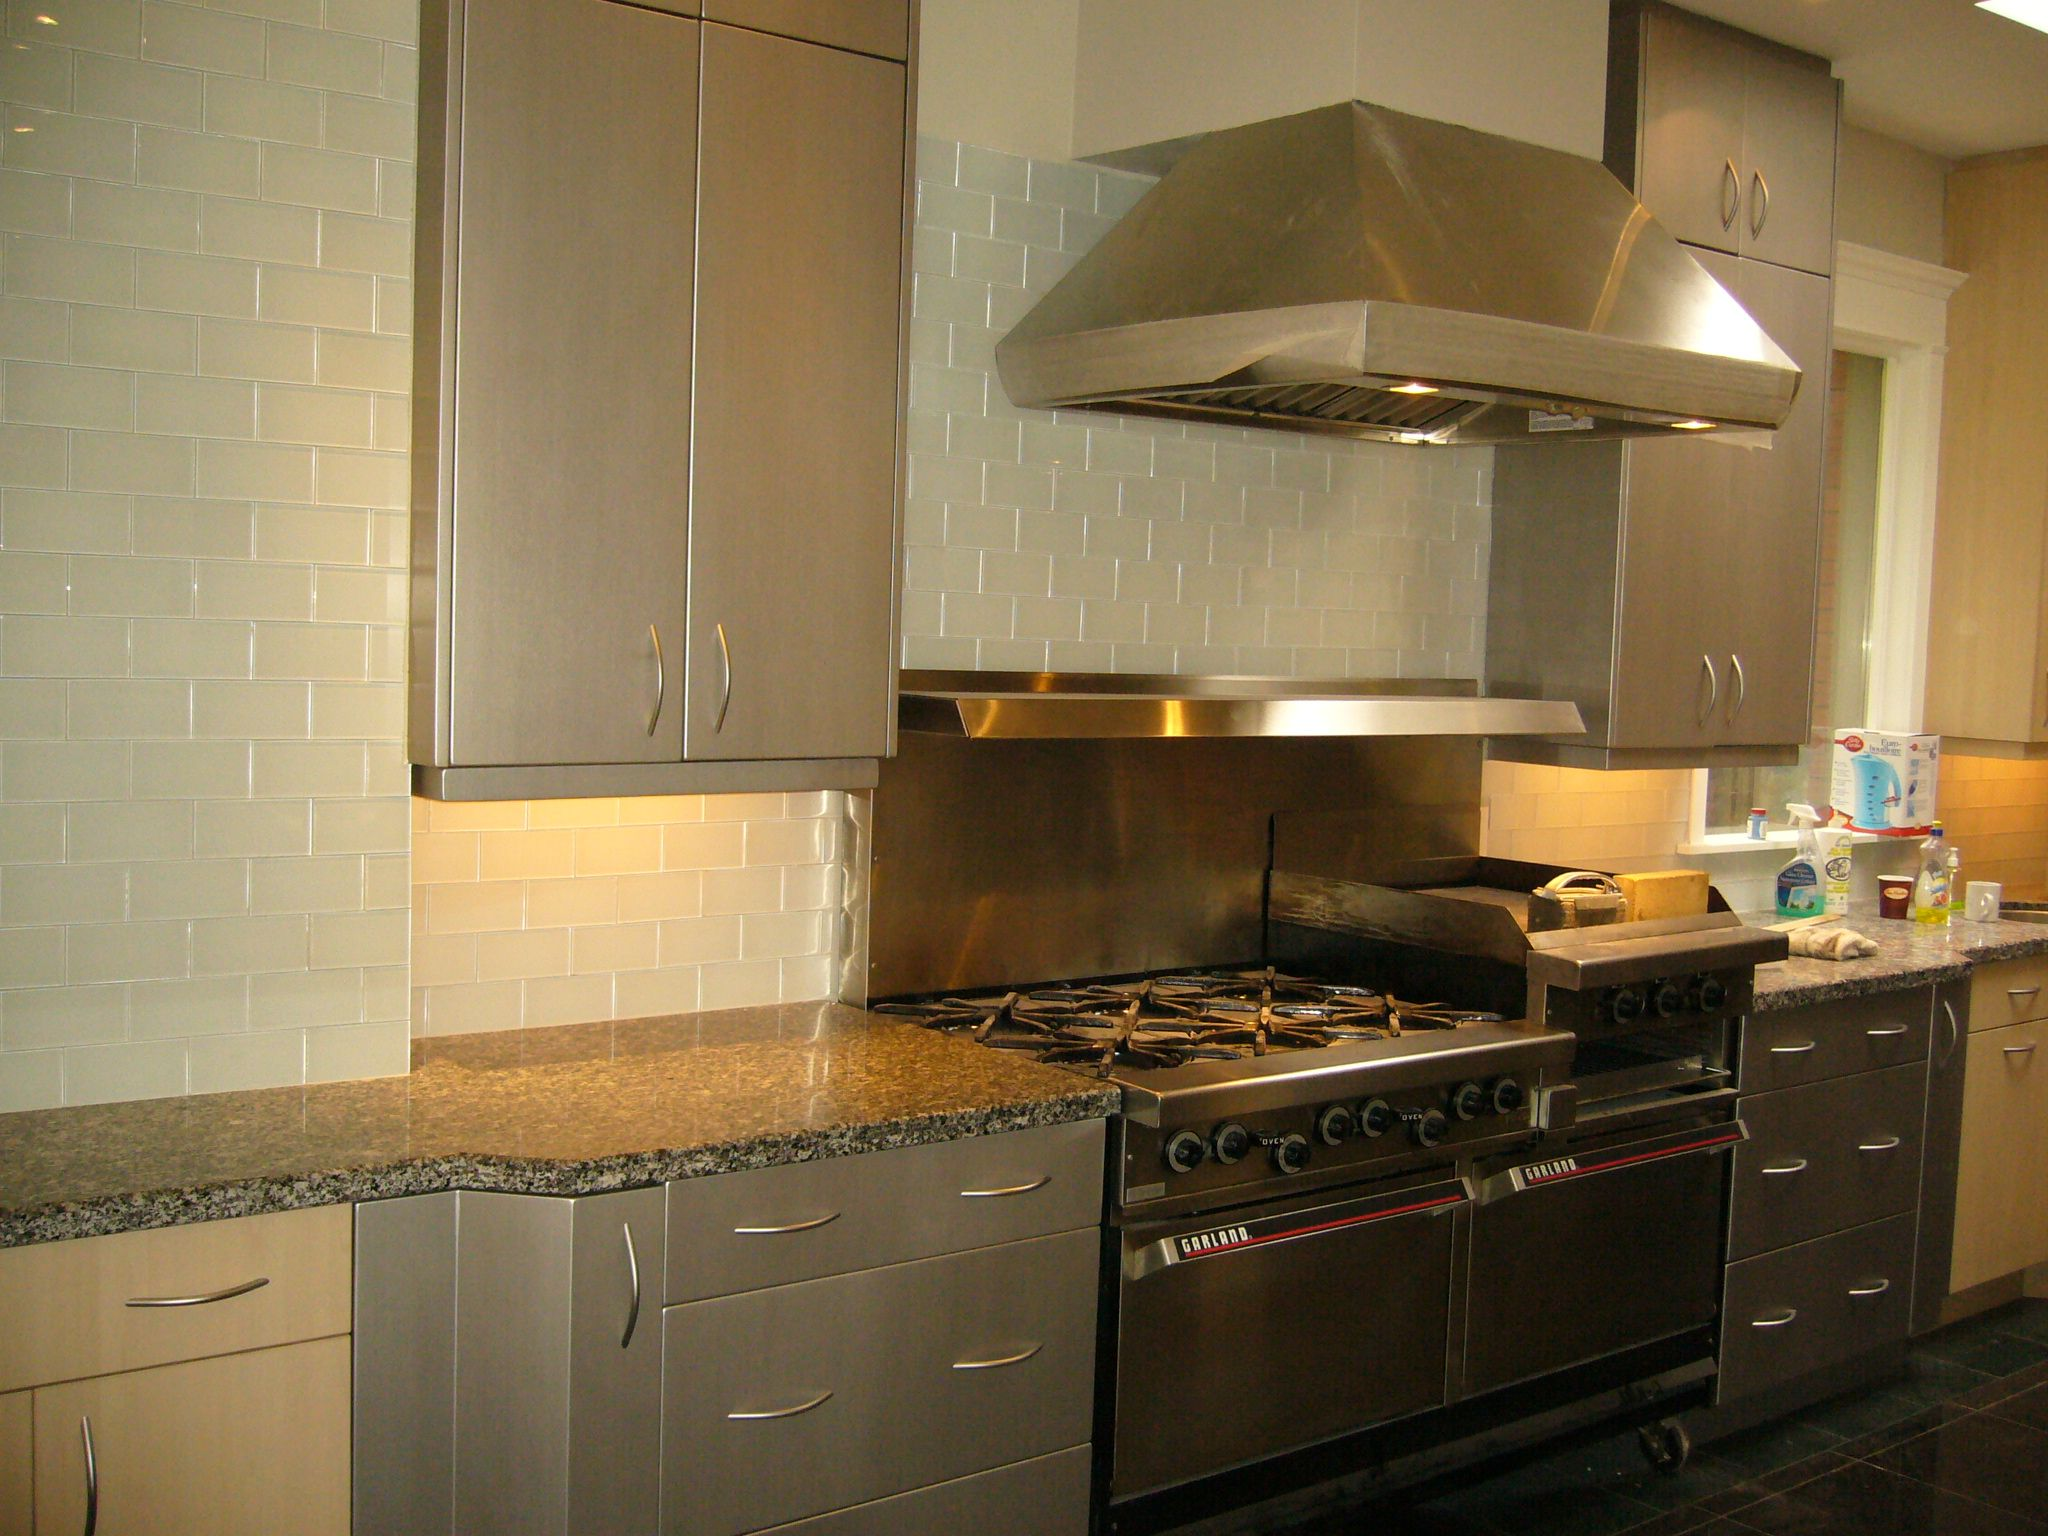 Kitchen remodeling with 3m 39 s di noc architectural finishes for 3m kitchen ideas